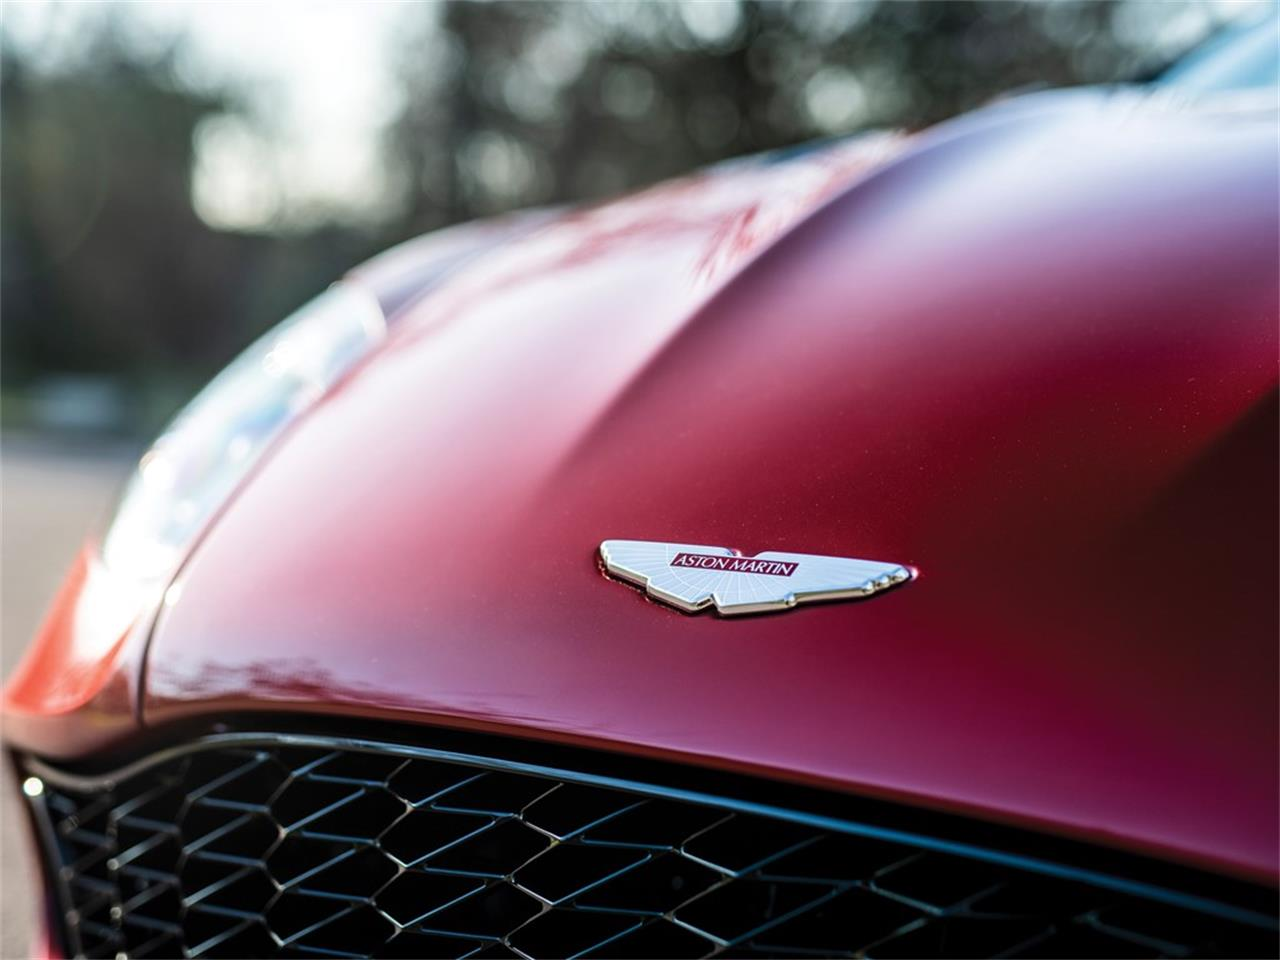 2019 Aston Martin Vanquish for sale in Cernobbio, Other – photo 6